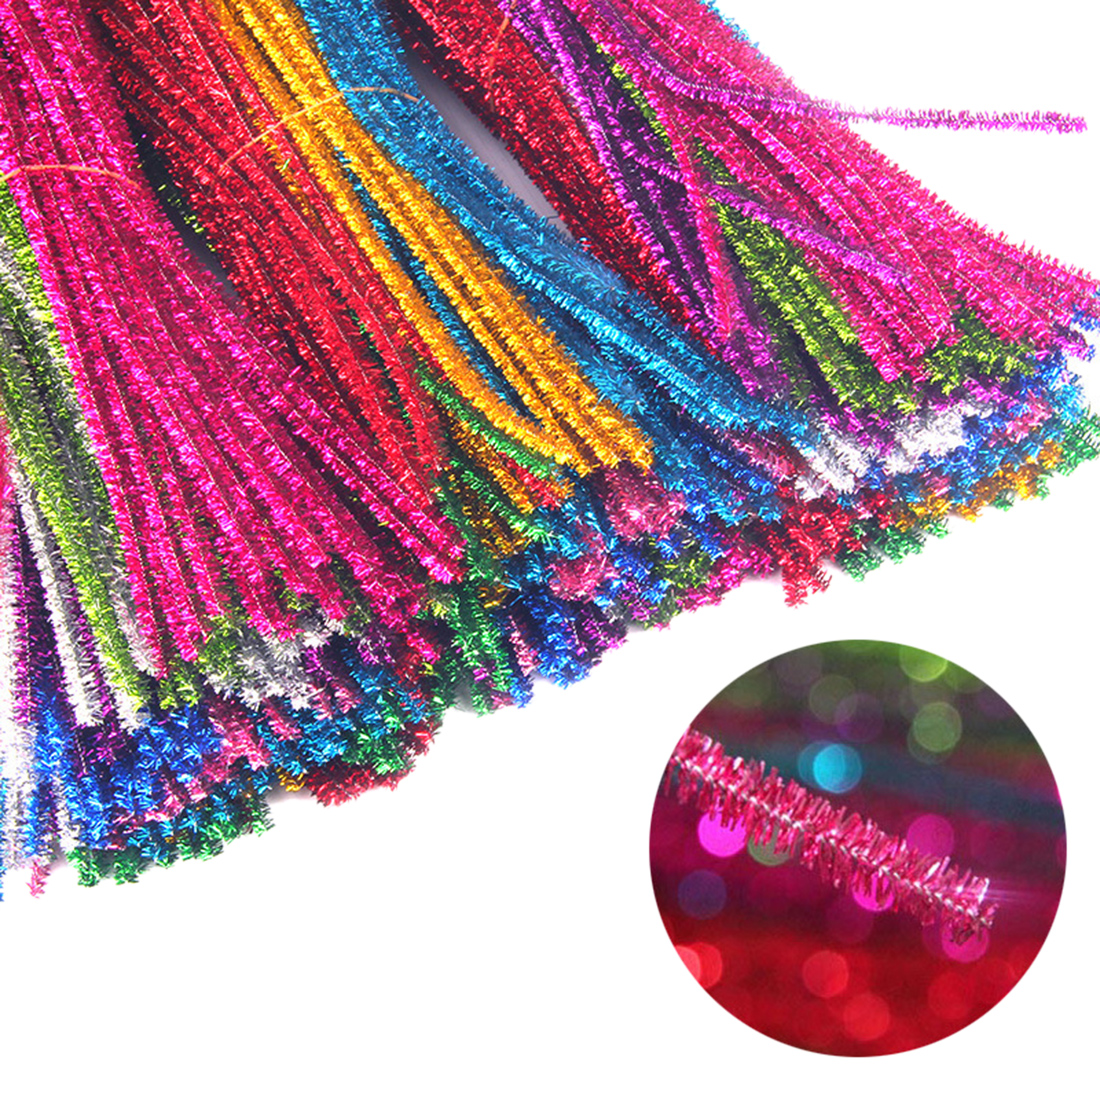 200pcs 30cm DIY Art Craft Glitter Chenille Stems Pipe Cleansers For Crafting DIY Kids Educational Toys-Assorted Colors(10-Color)